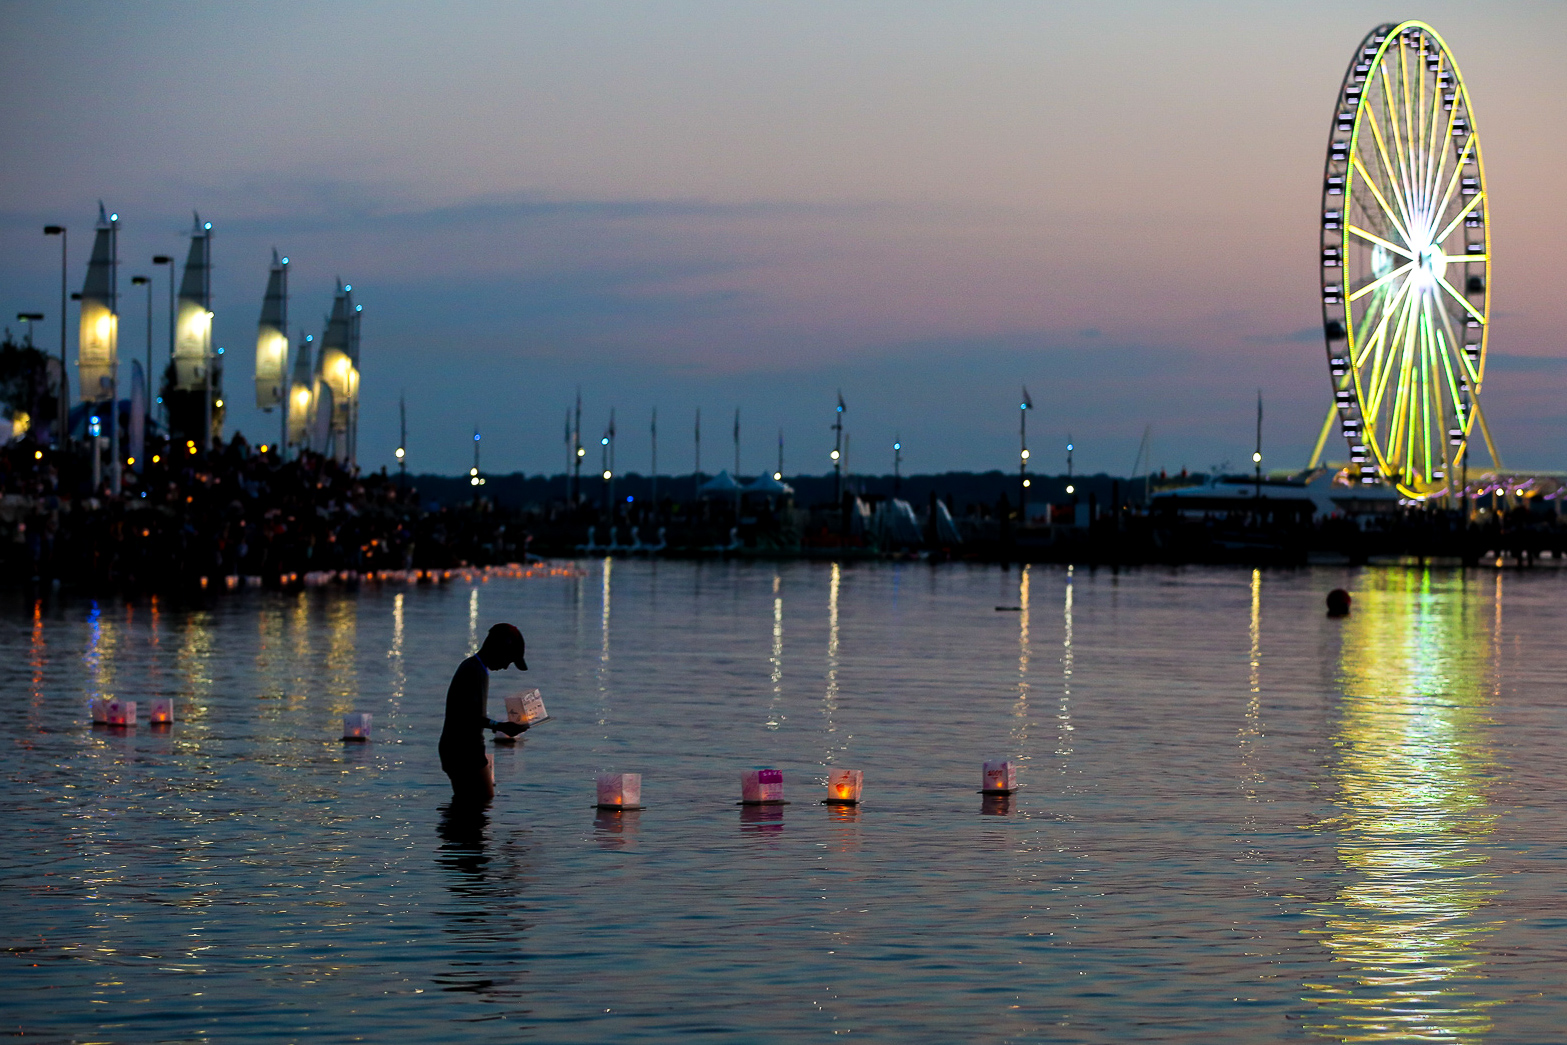 A boy puts a lantern in the water during the water lantern festival at National Harbor in August.{&nbsp;}(Amanda Andrade-Rhoades/DC Refined)<p></p>